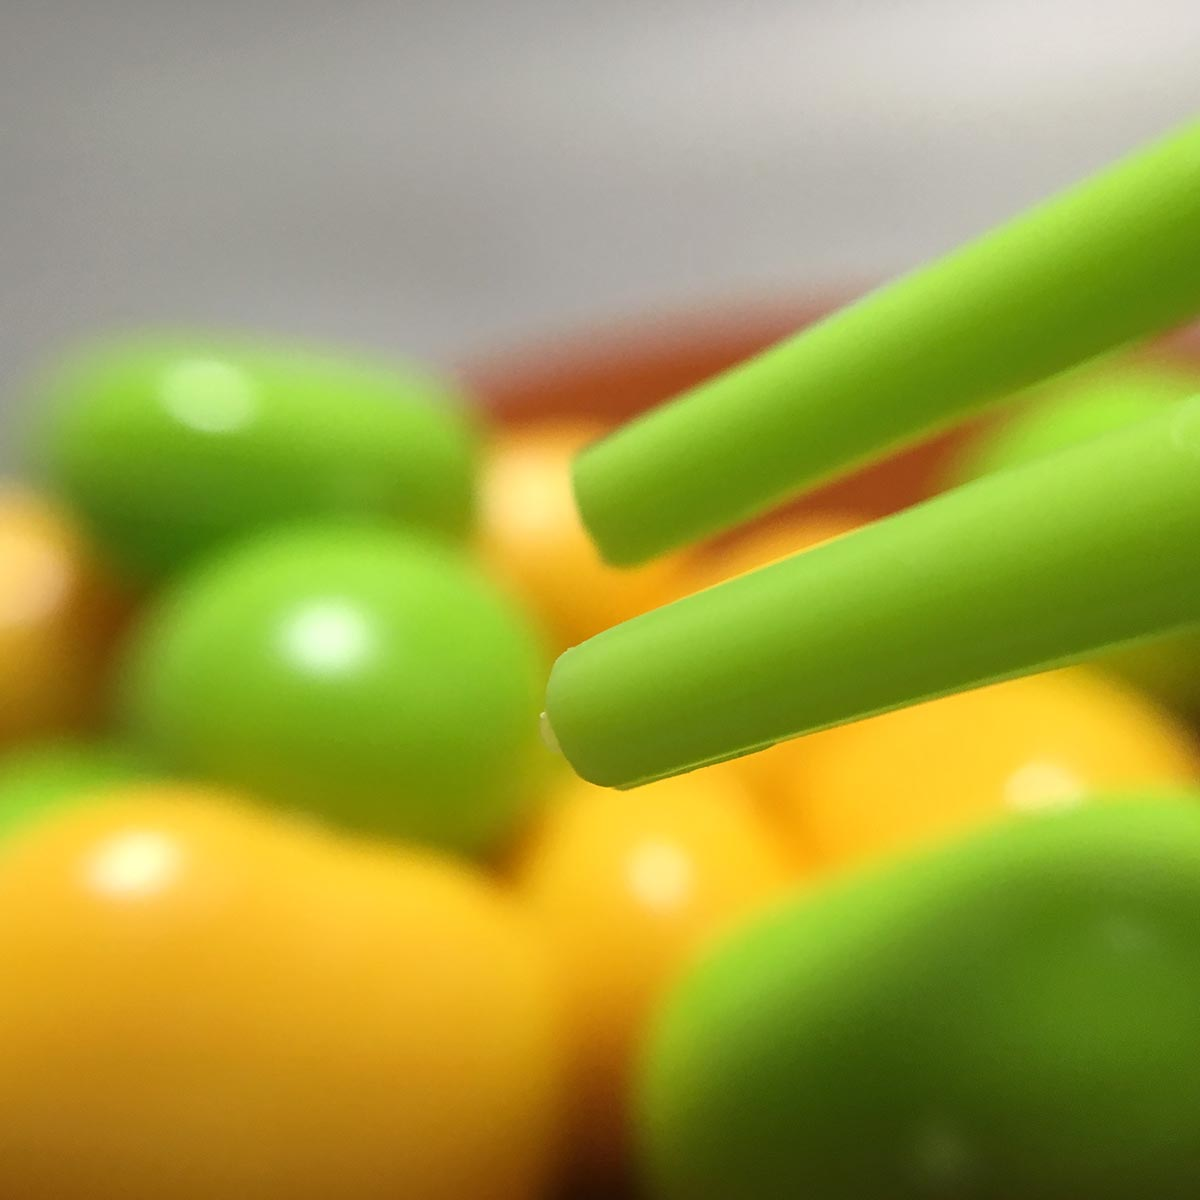 Chopstick Bean Grabbing Game - Green Chopsticks